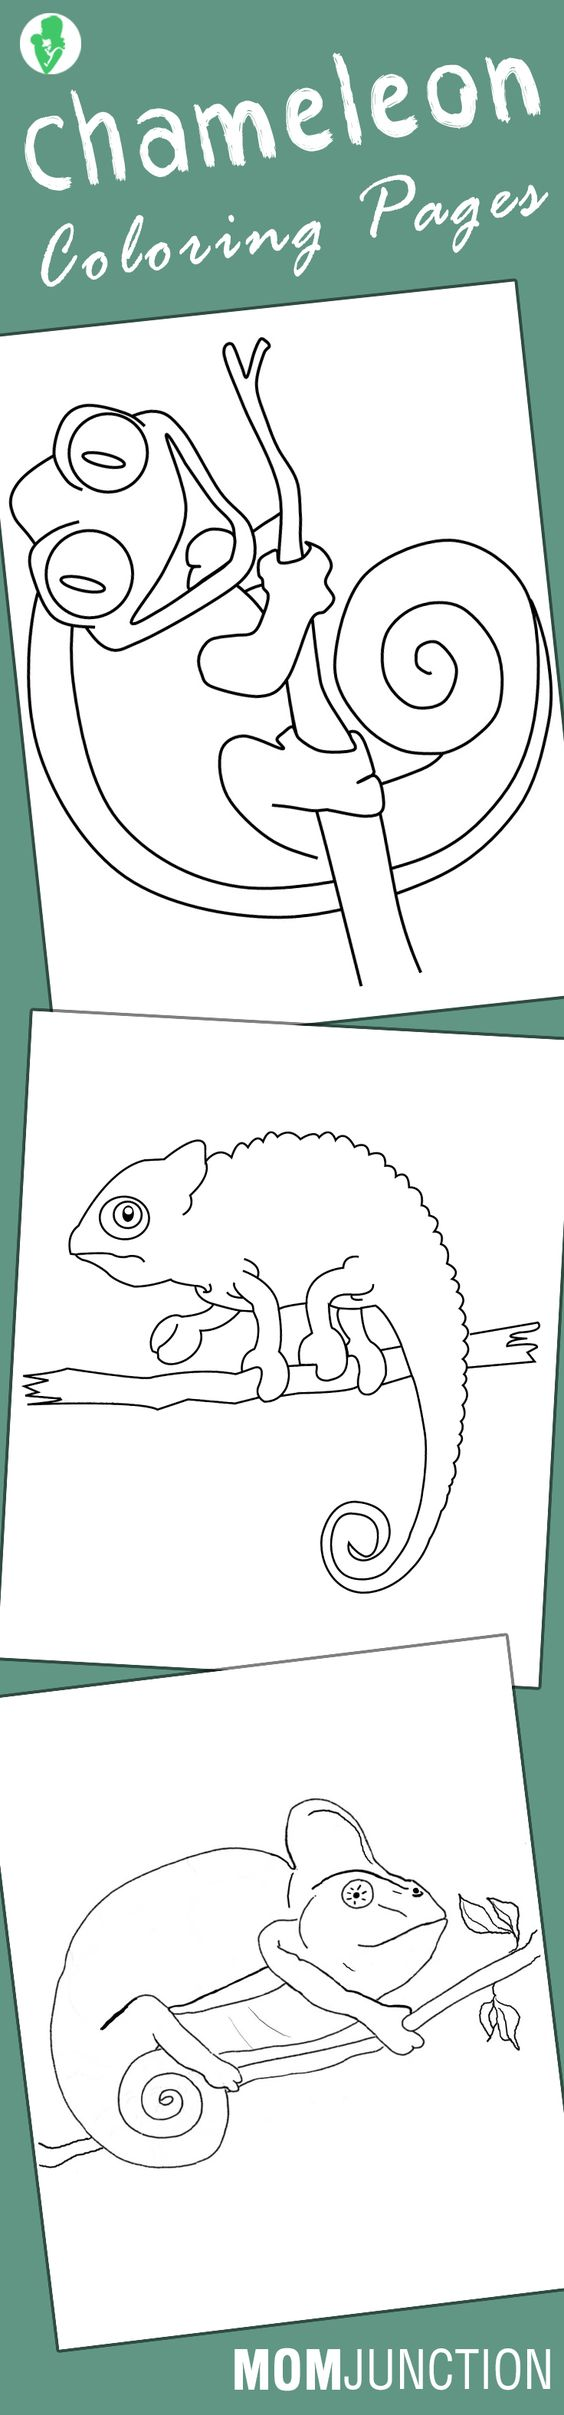 chameleon coloring pages free printables coloring